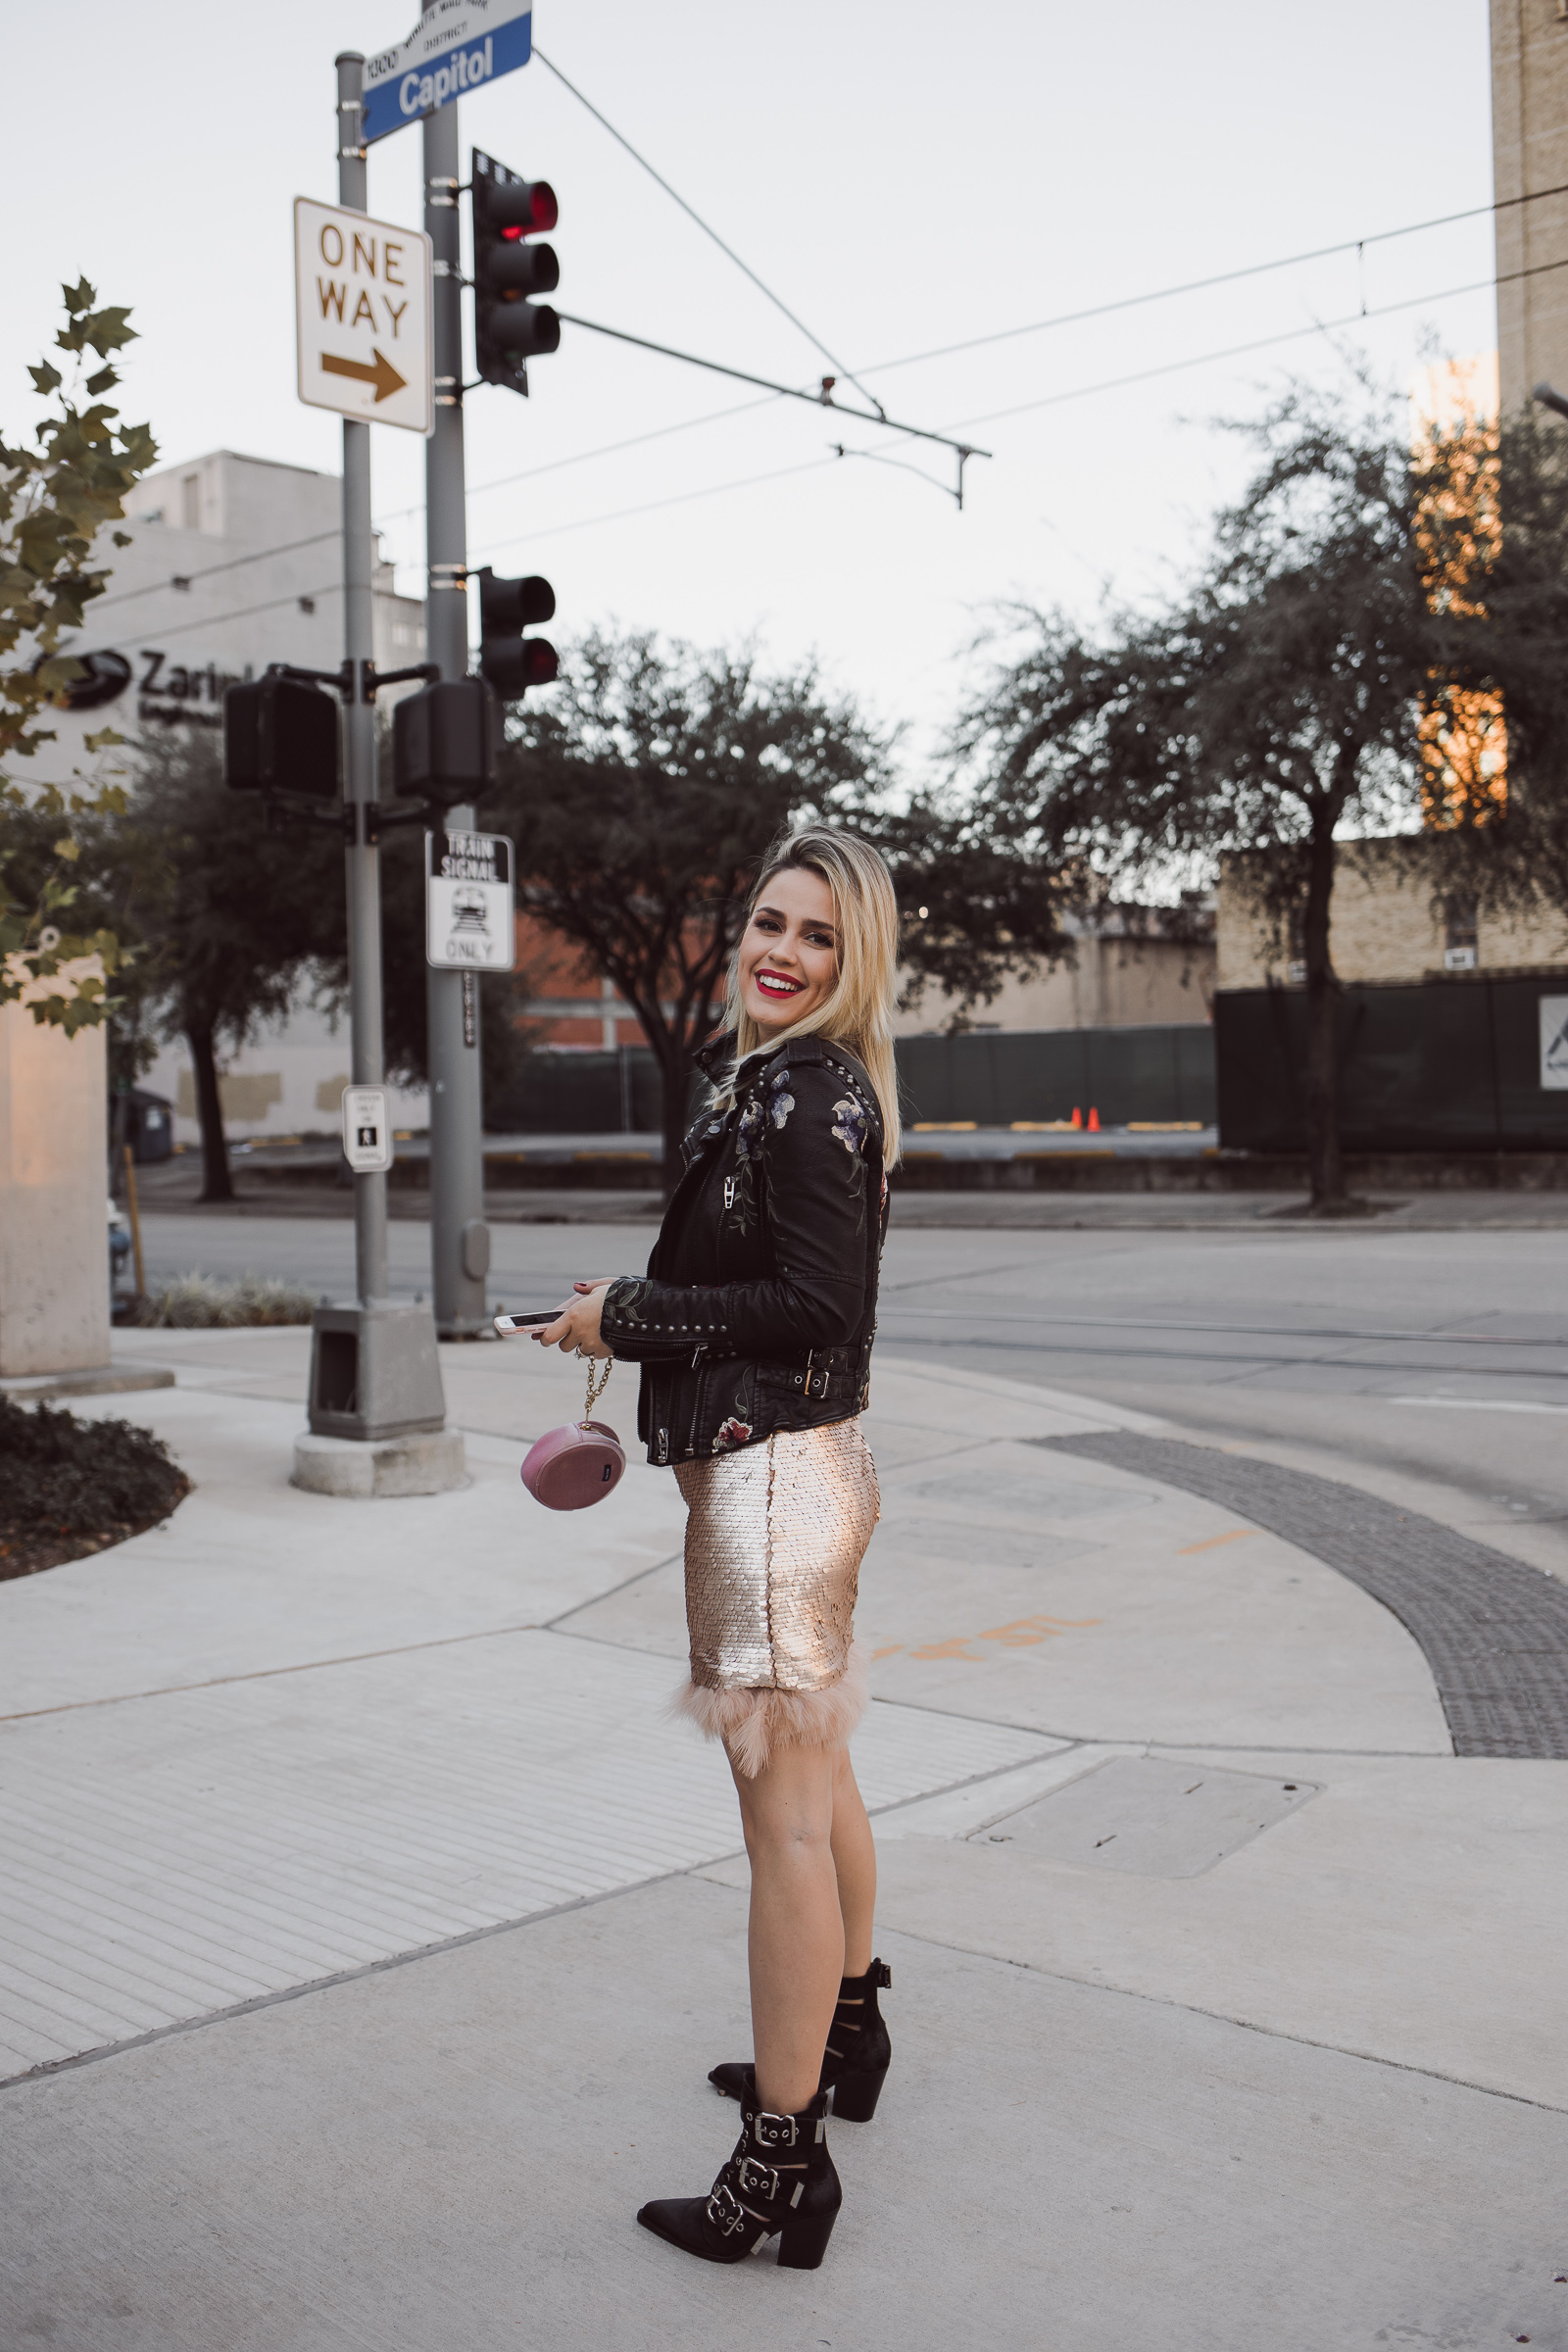 Houston Fashion blogger Uptown with Elly Brown wears a sequin dress with a leather jacket